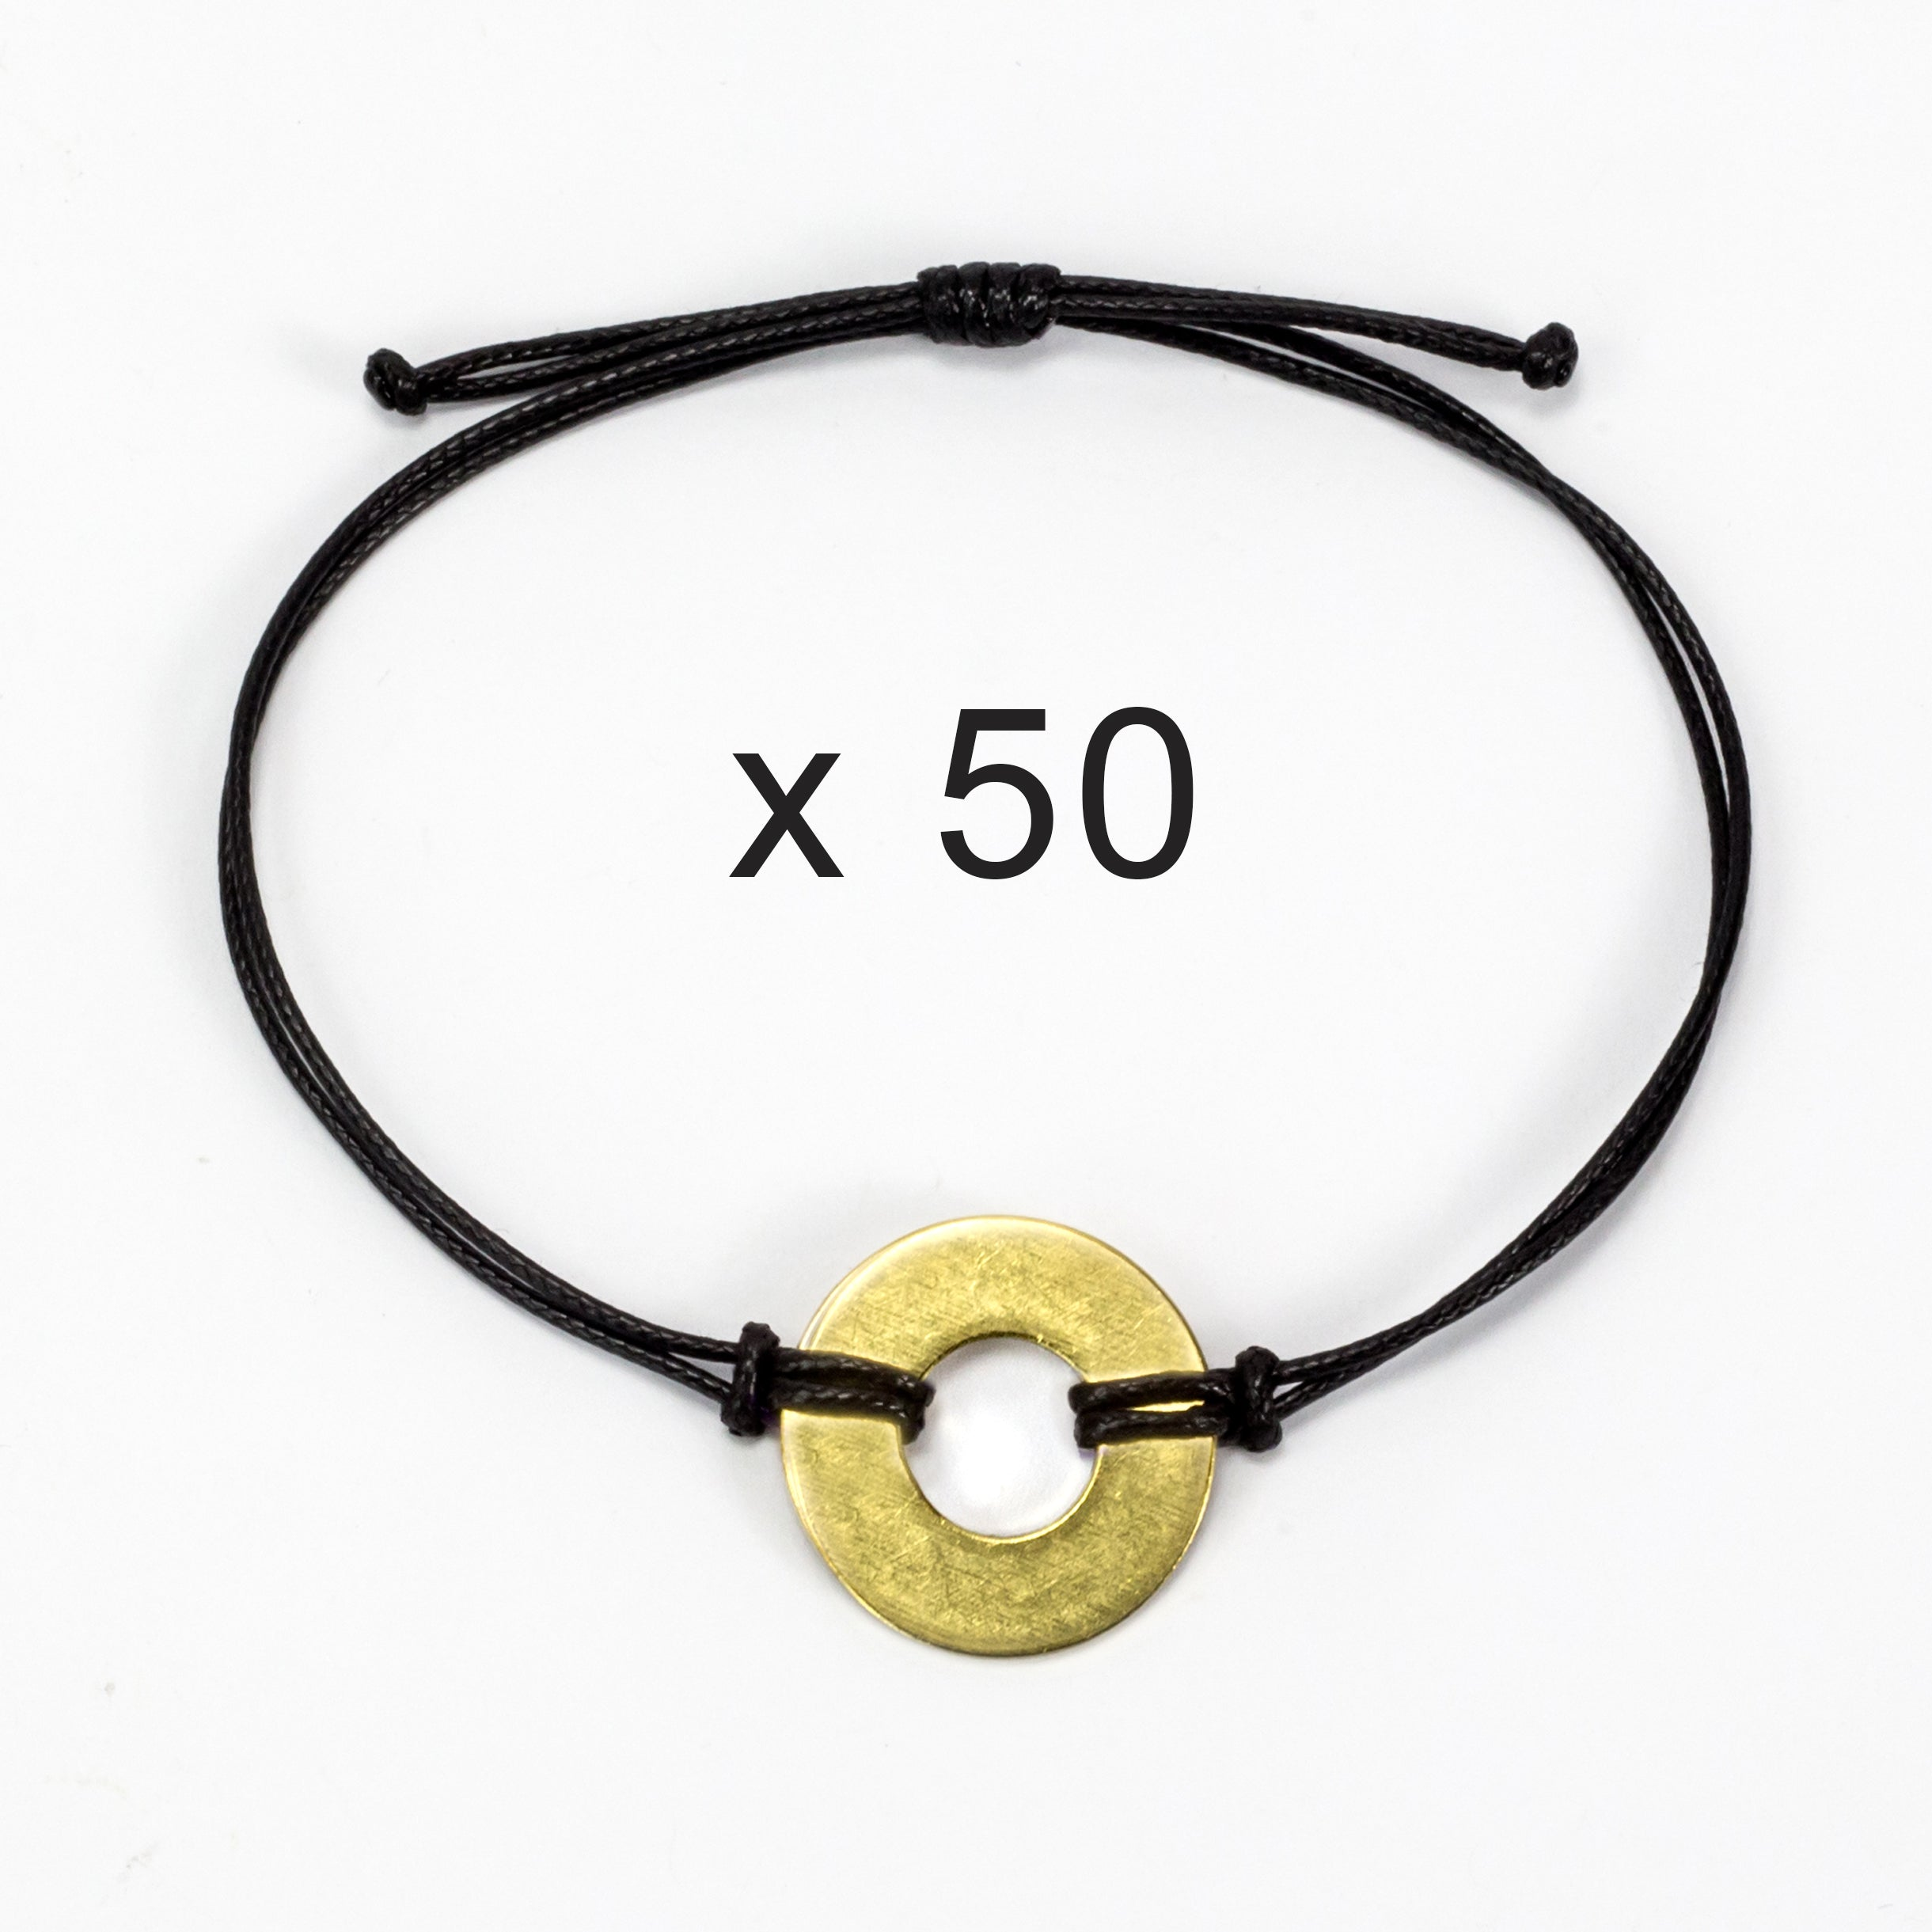 MyIntent Refill Classic Bracelets Black String set of 50 with Brass tokens